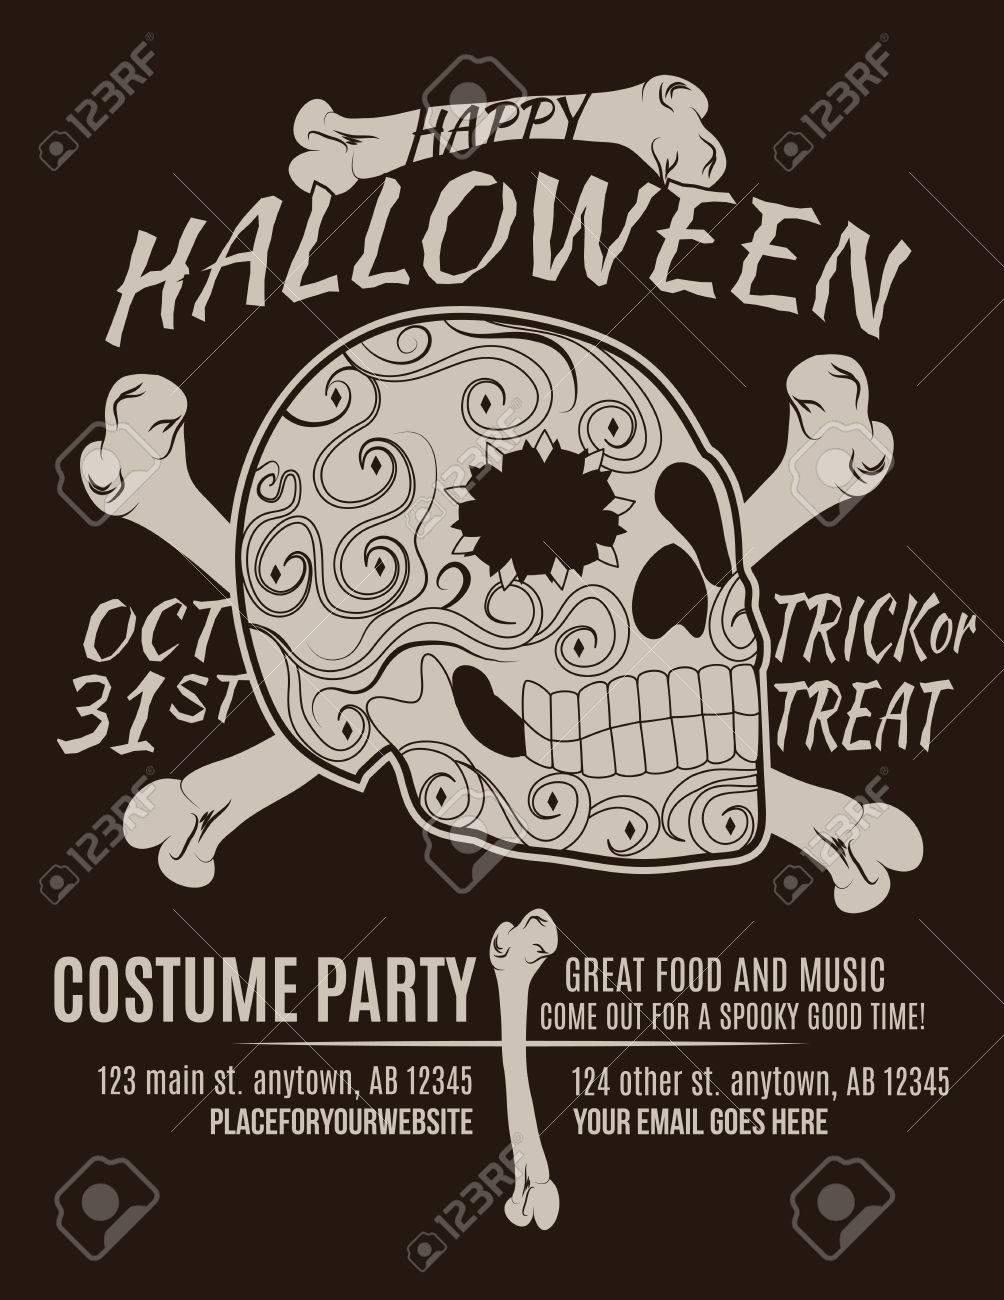 happy halloween party flyer with sugar skull and bones royalty free